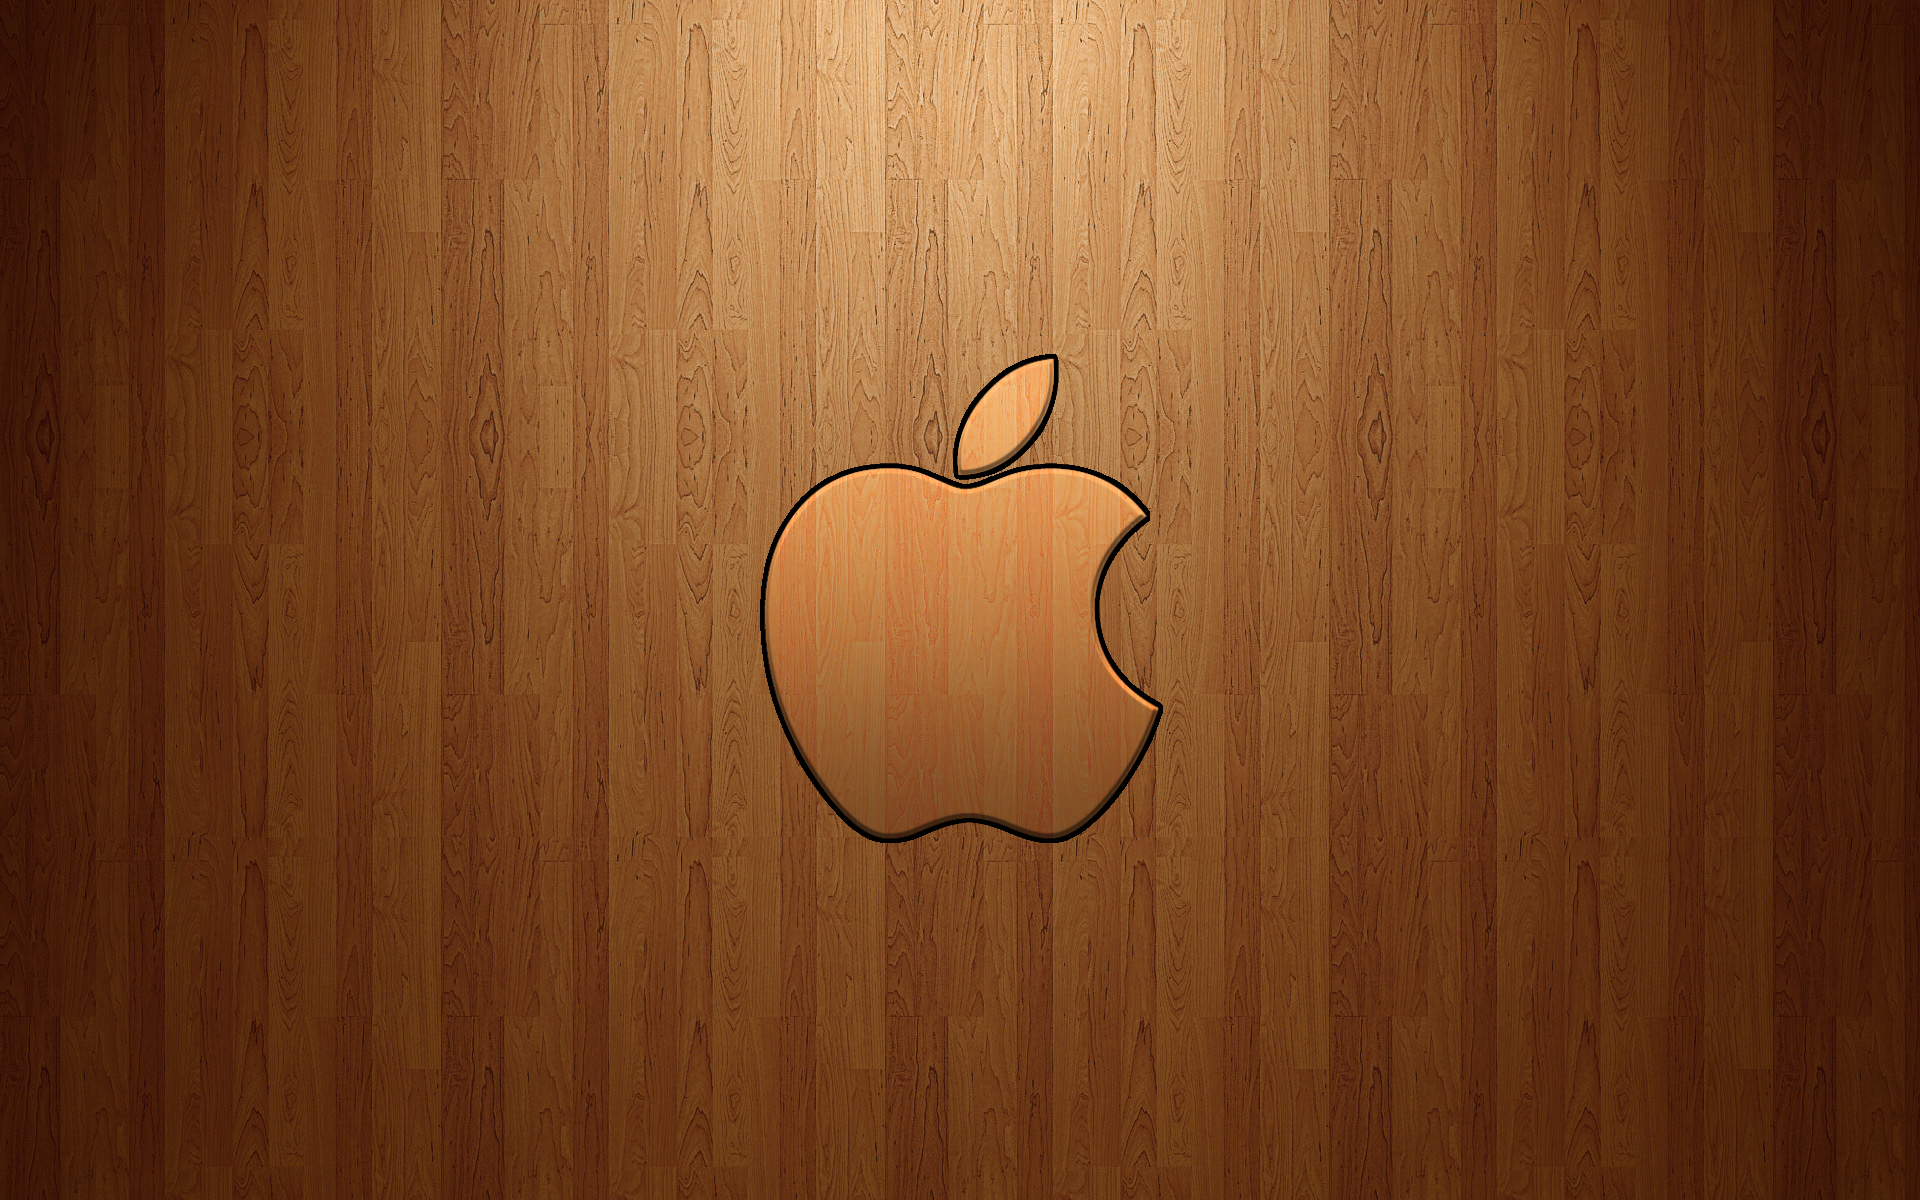 Apple Logo Wood